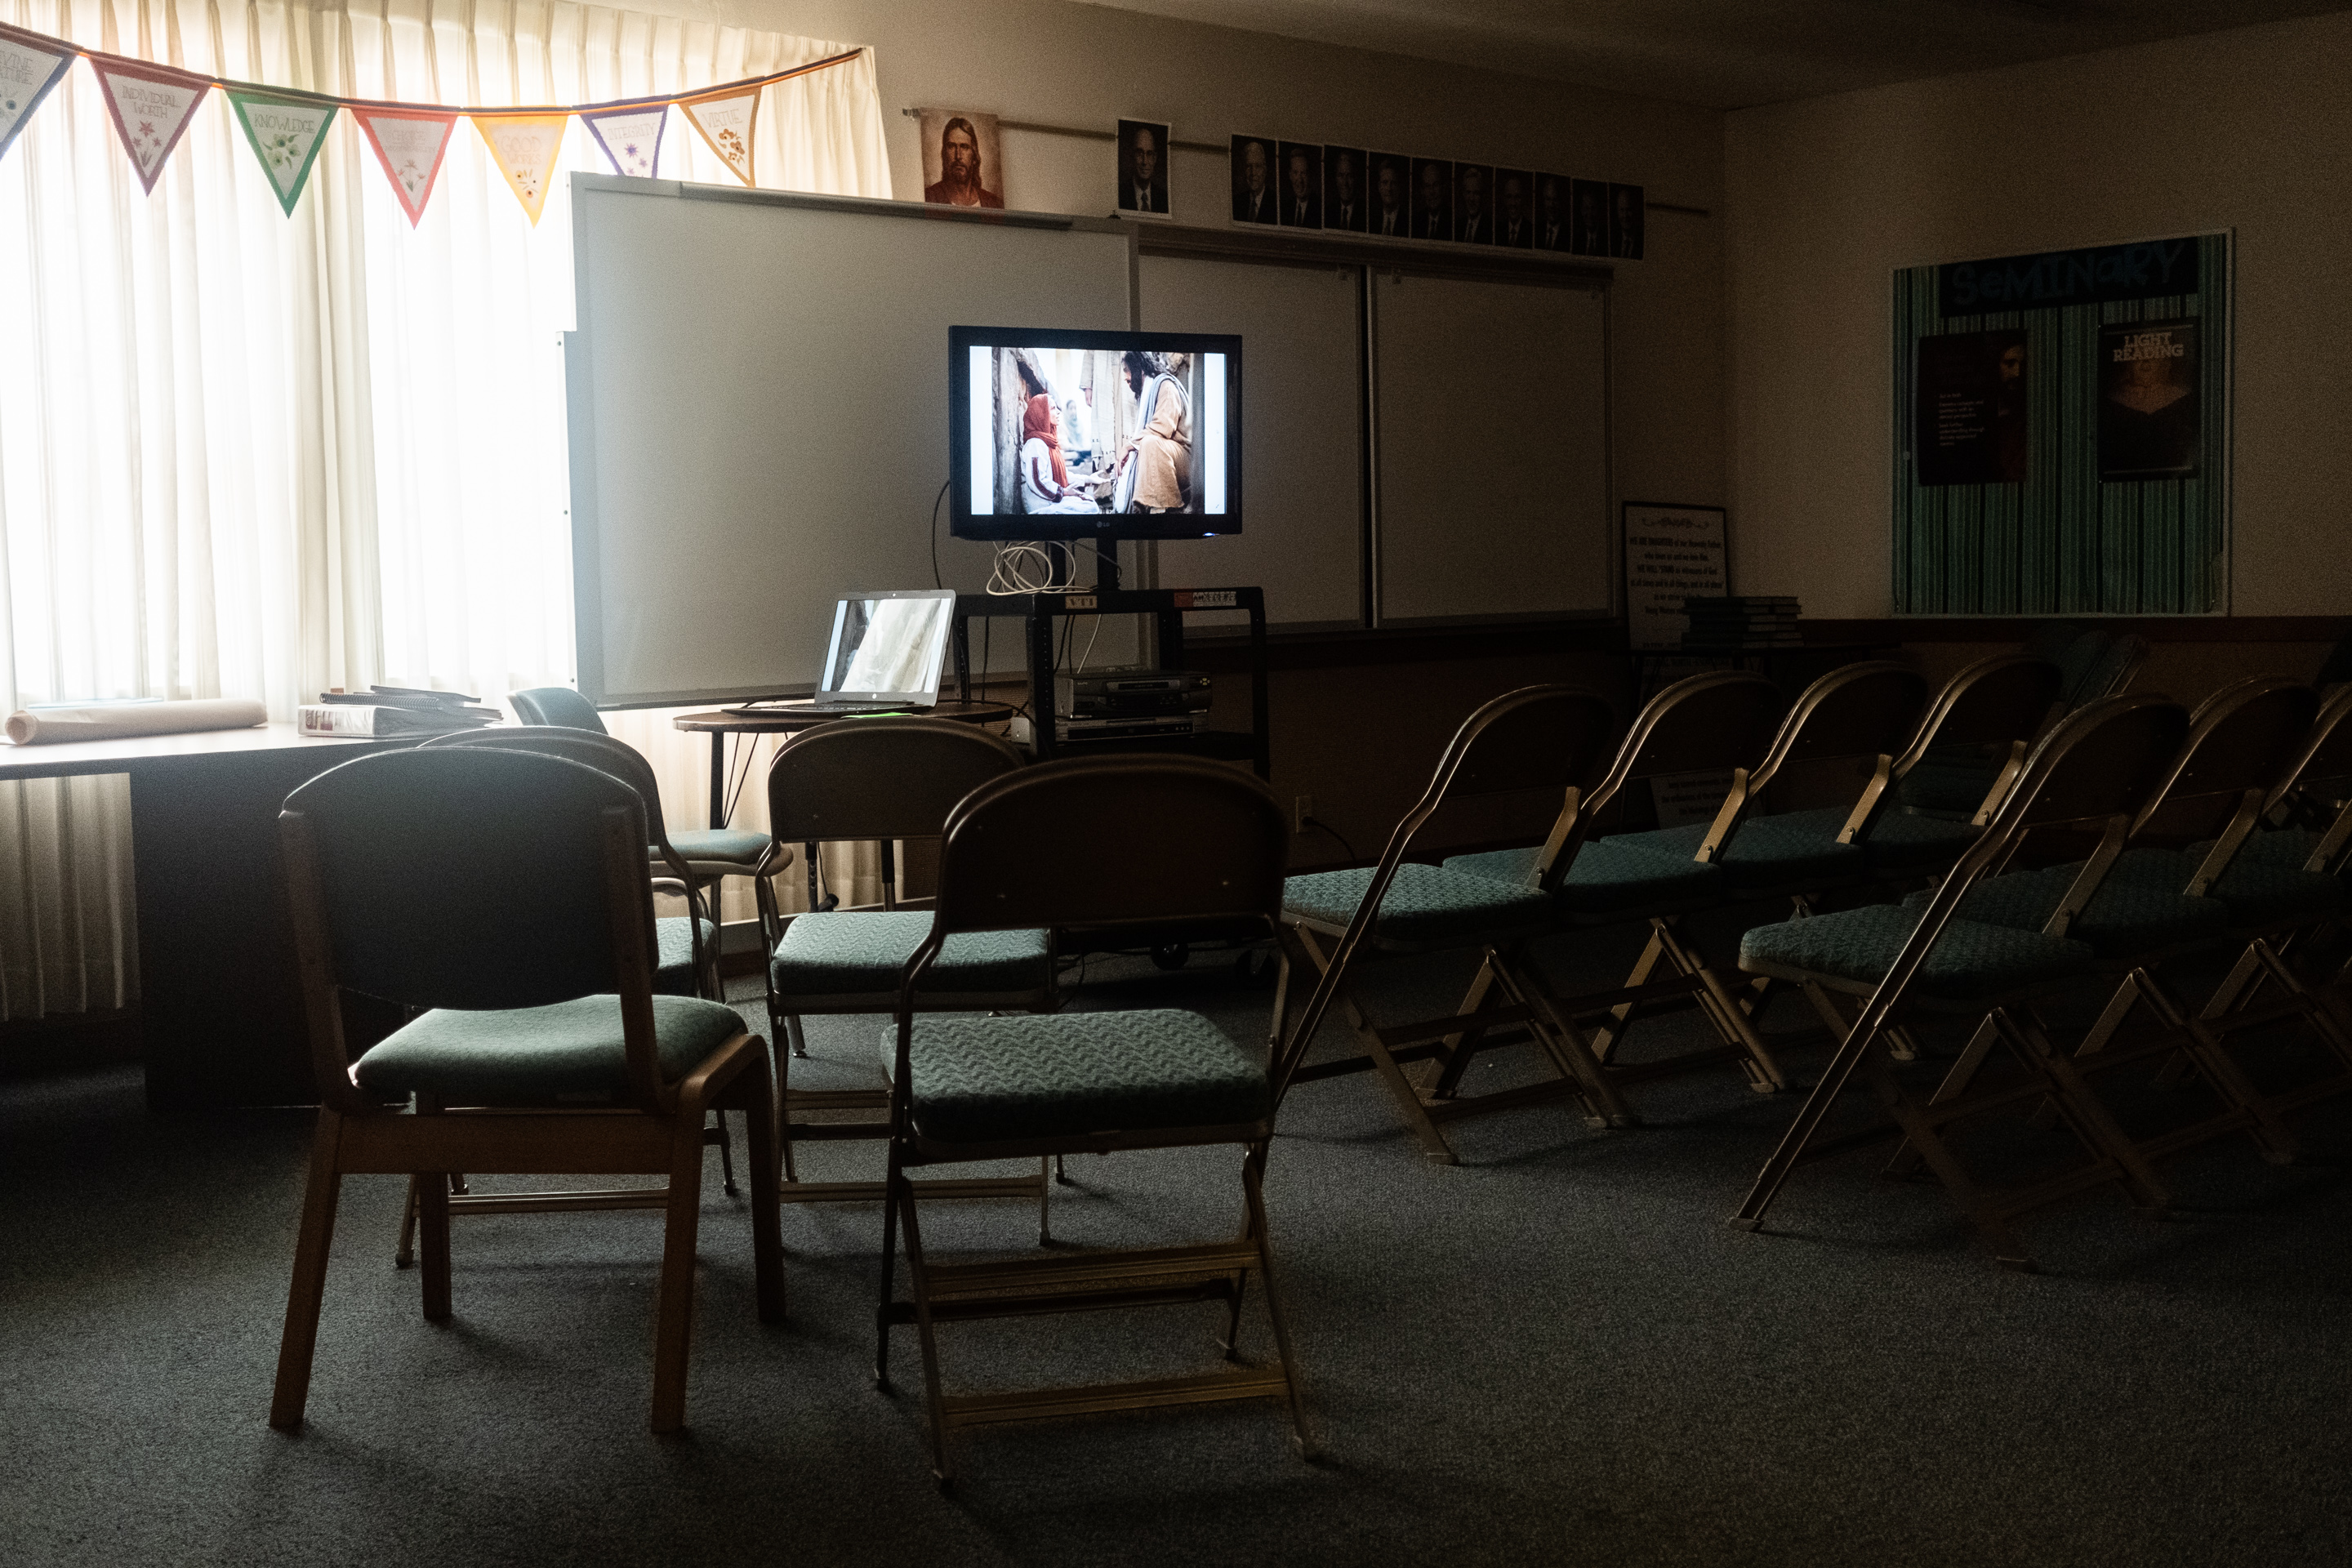 Seminary room at The Church of Jesus Christ of Latter-Day Saints, Nauvoo, IL 2019